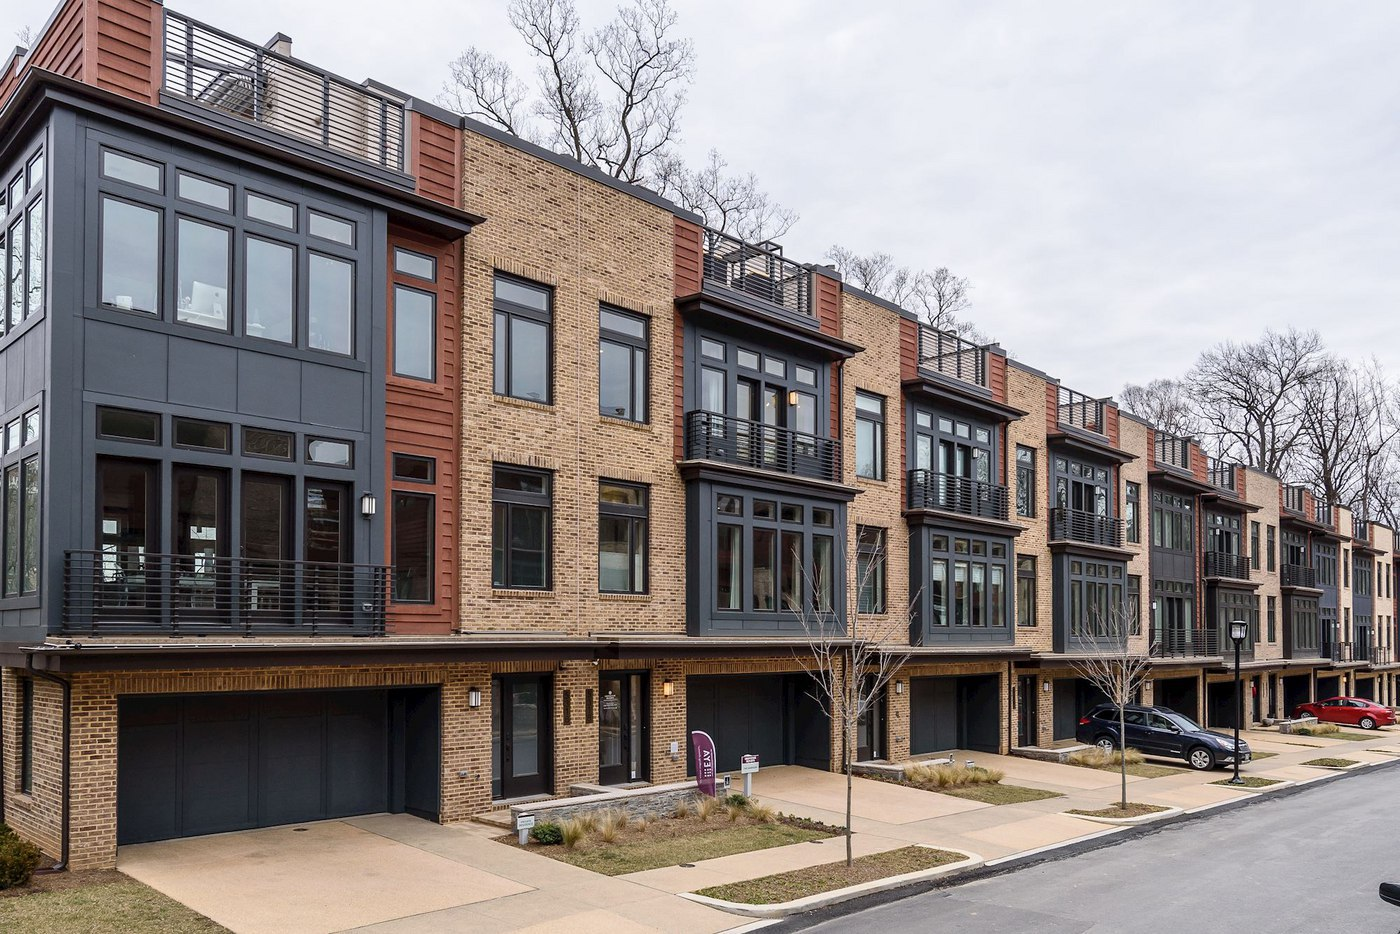 Townhouse or Condominium? Tips to Help You Make the Right Choice in the Bethesda Housing Market